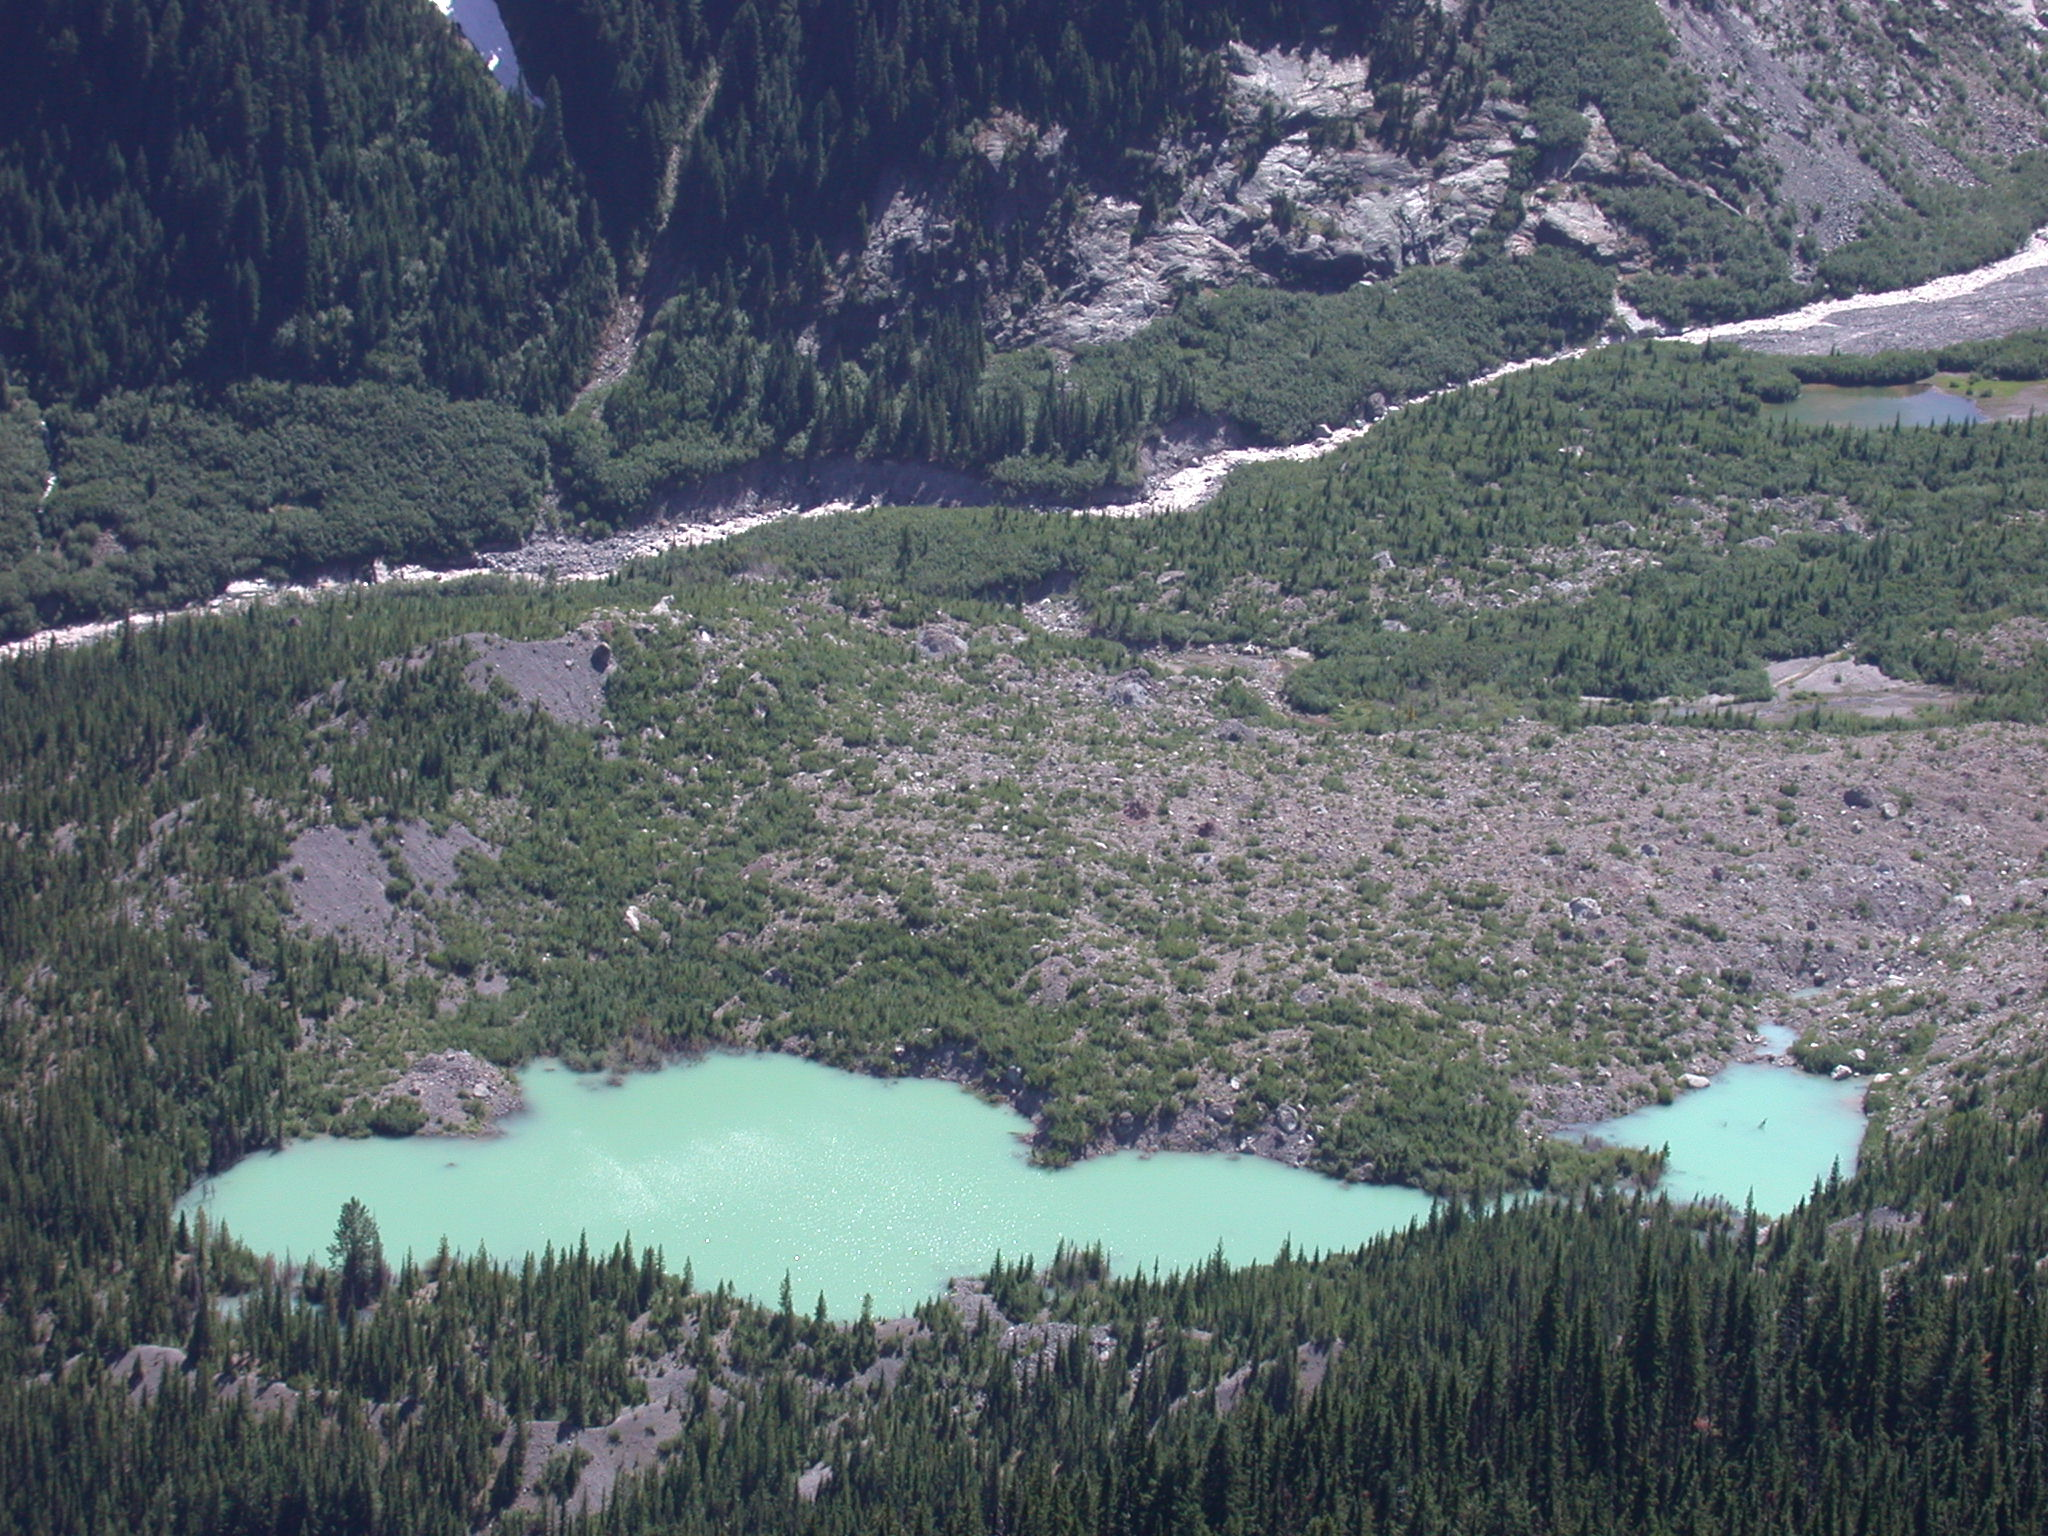 Glacier Lake on Mount Rainier